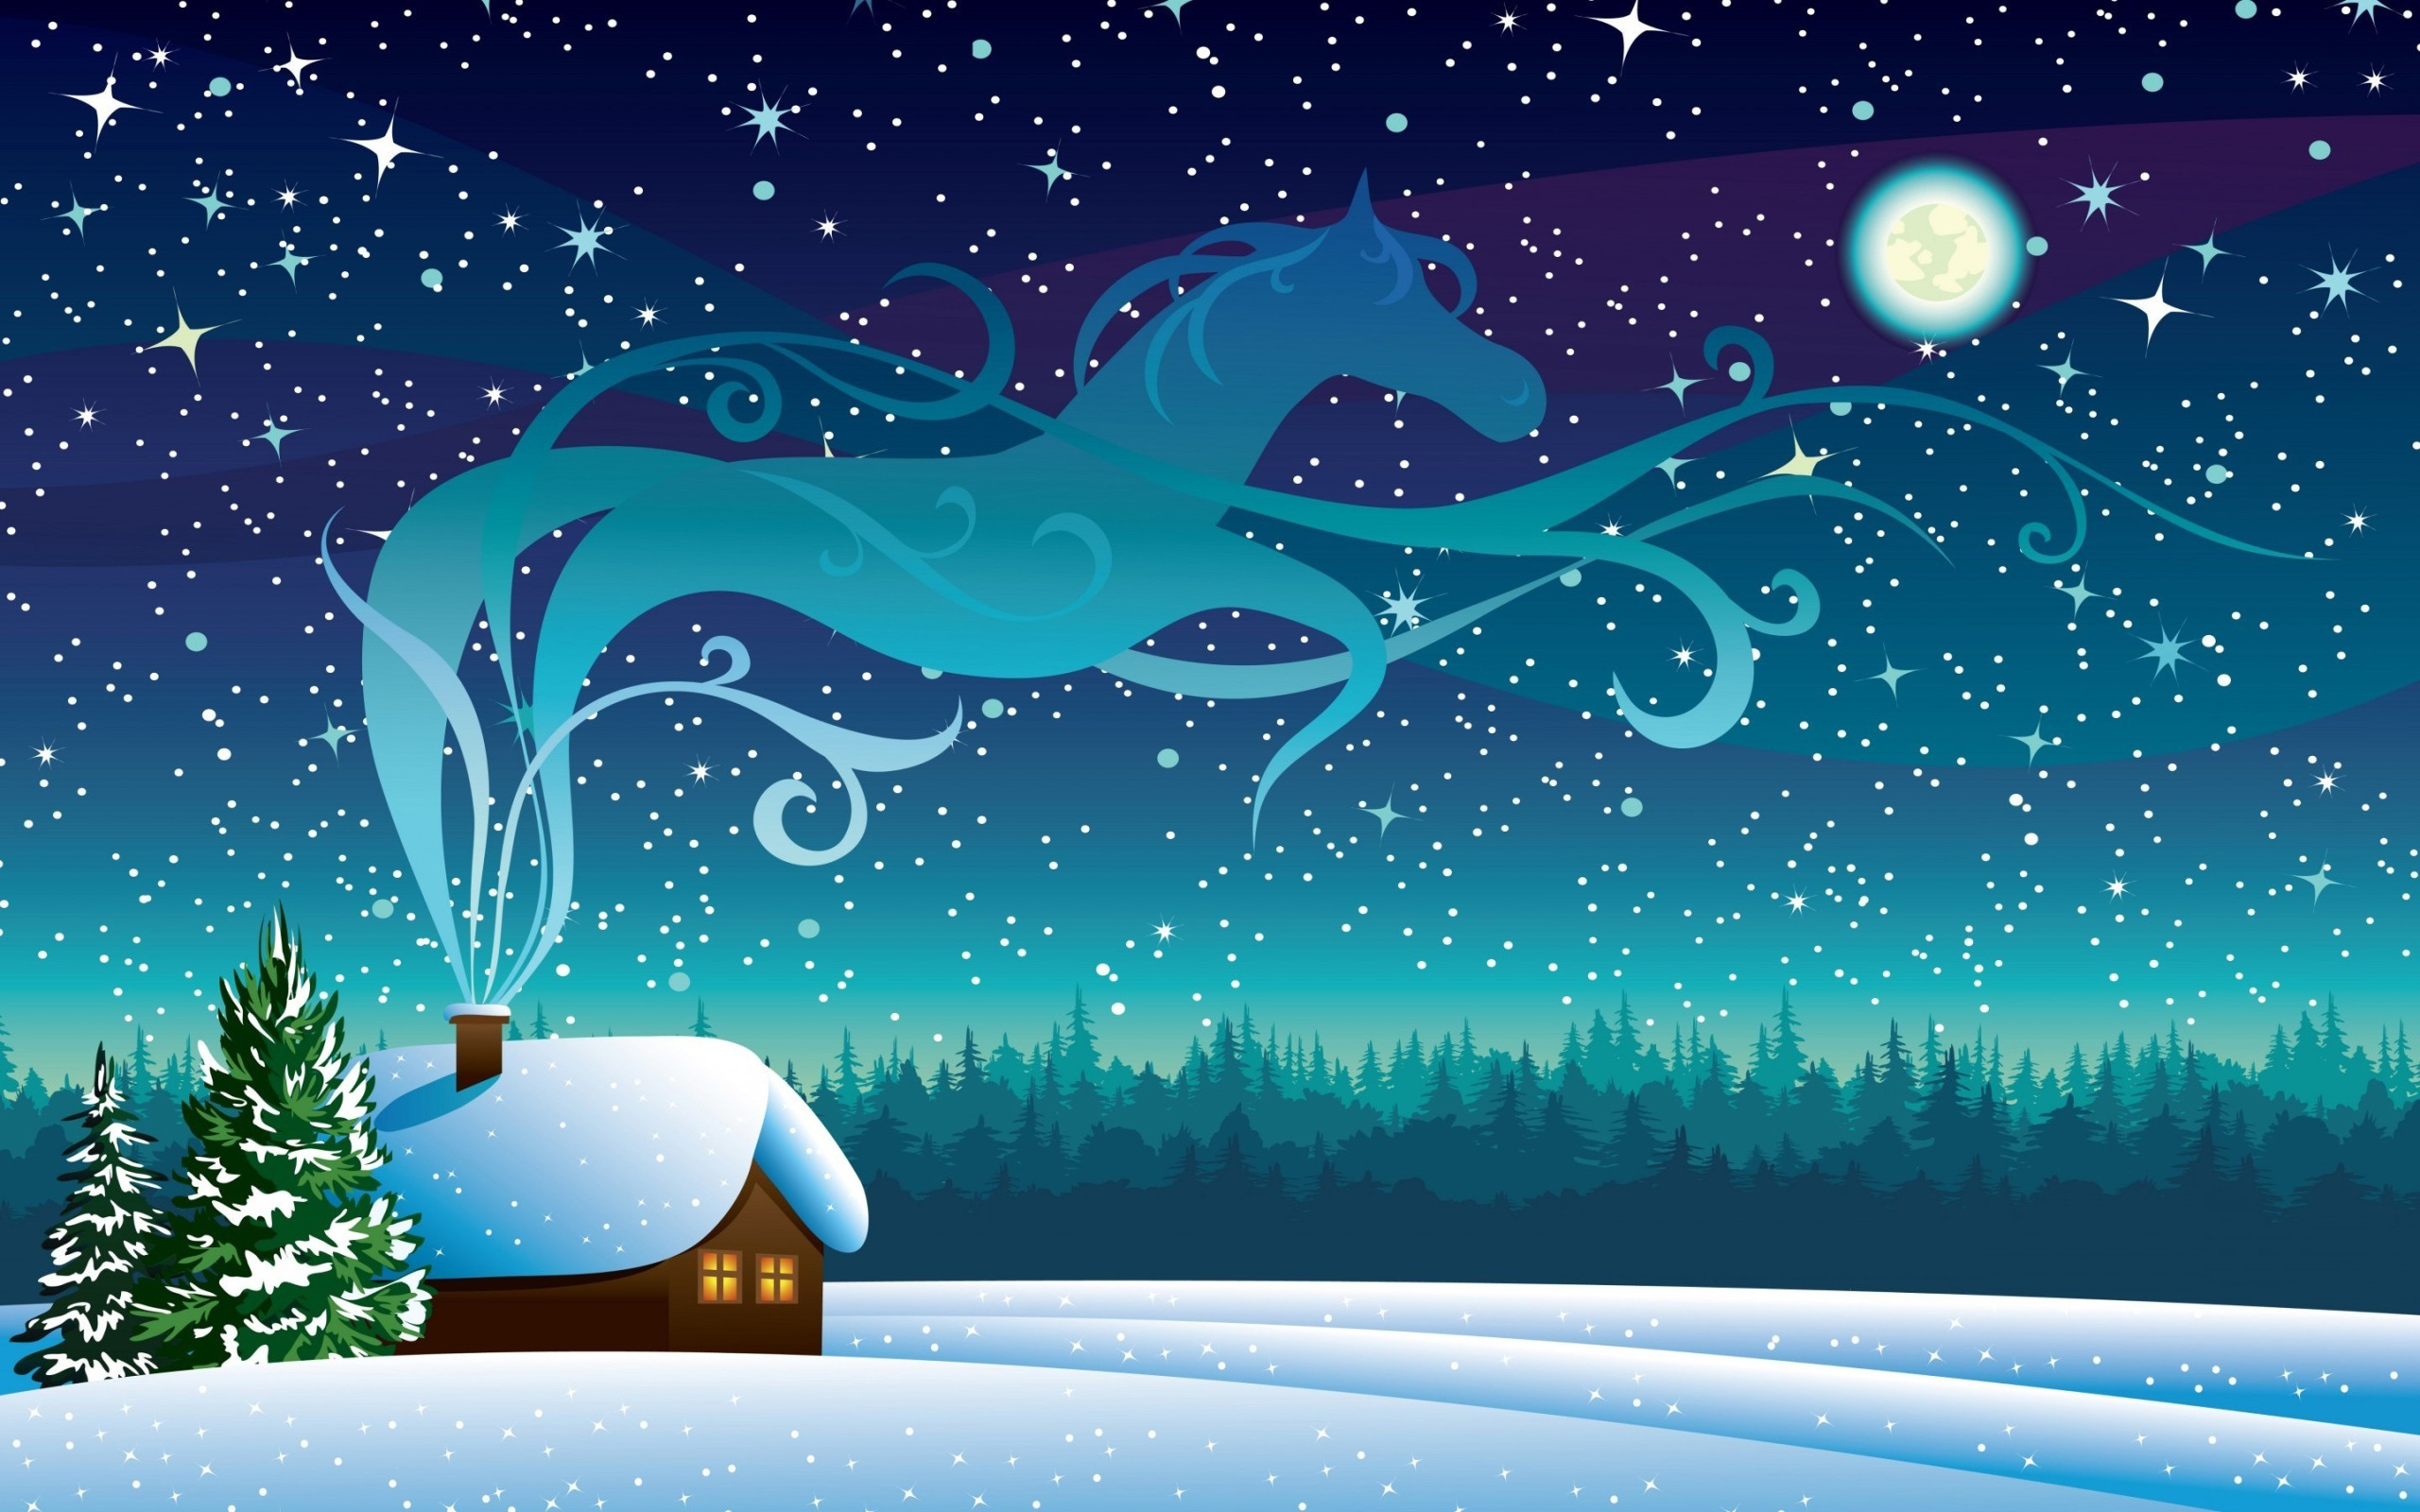 March 2018 Cute Full Screen Desktop Wallpapers Snow Cottage Night Horse Vector Art Pine Trees Wallpapers